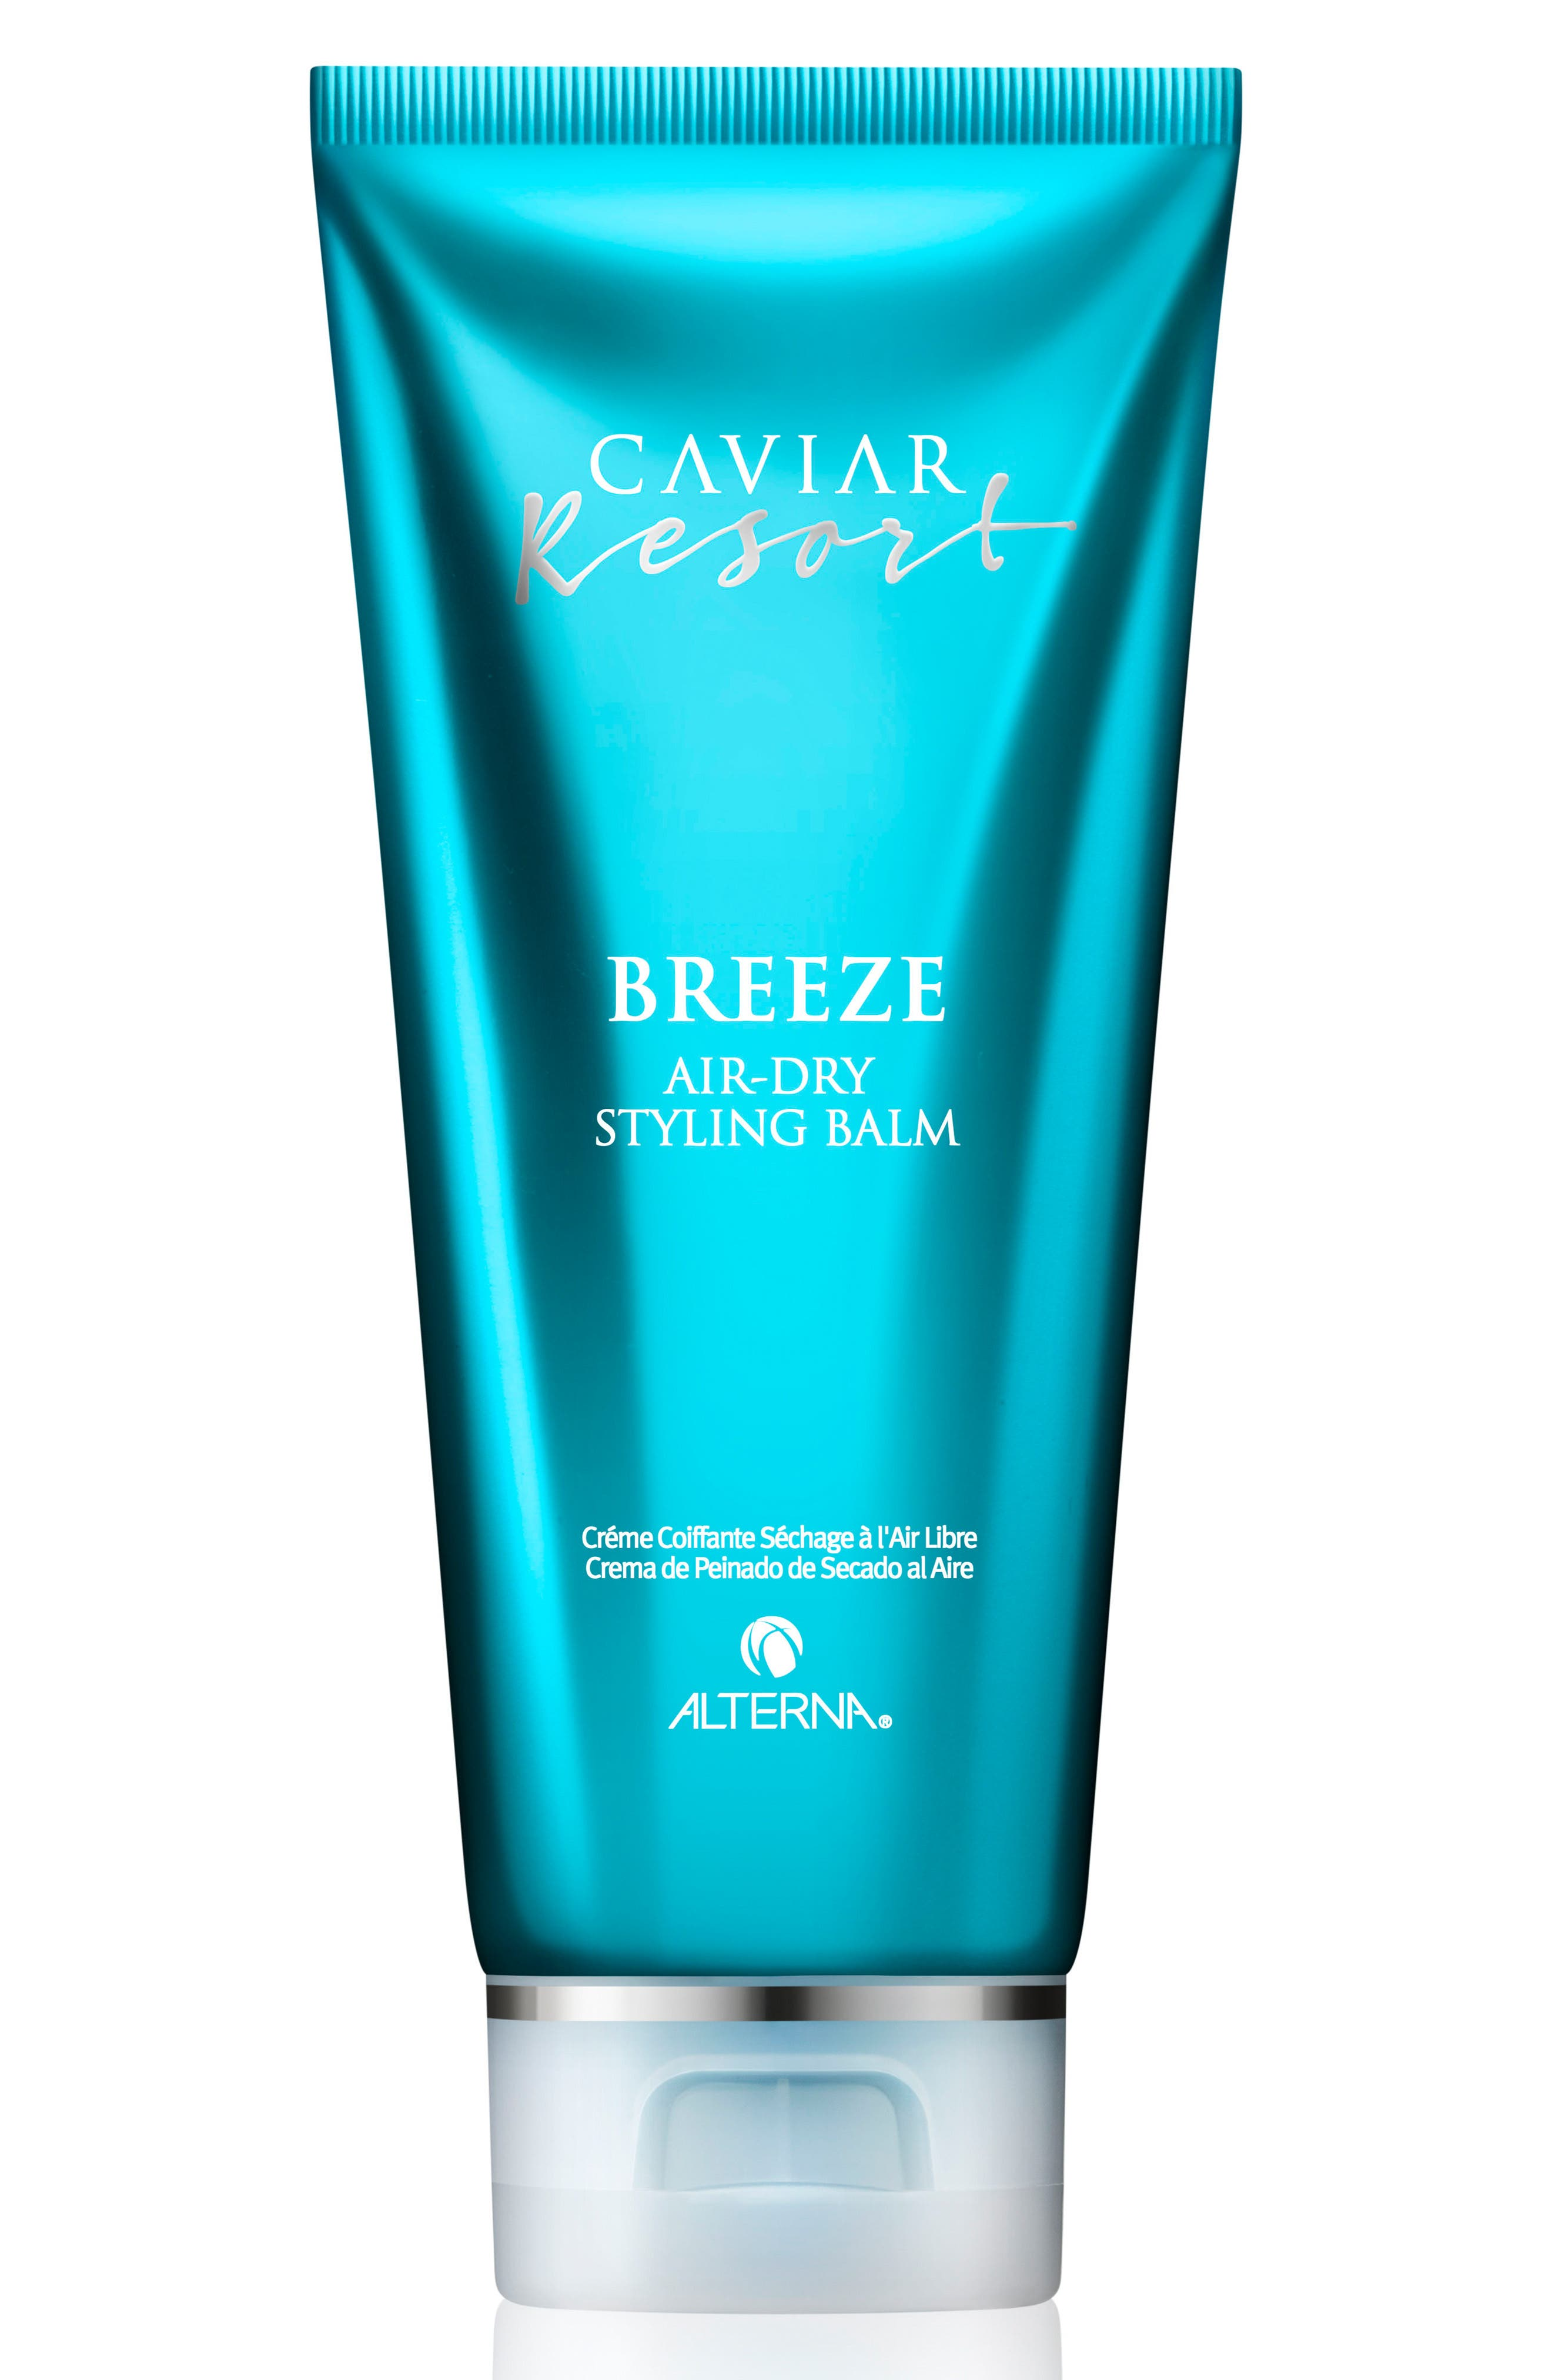 Caviar Resort Breeze Air-Dry Styling Balm,                         Main,                         color, No Color